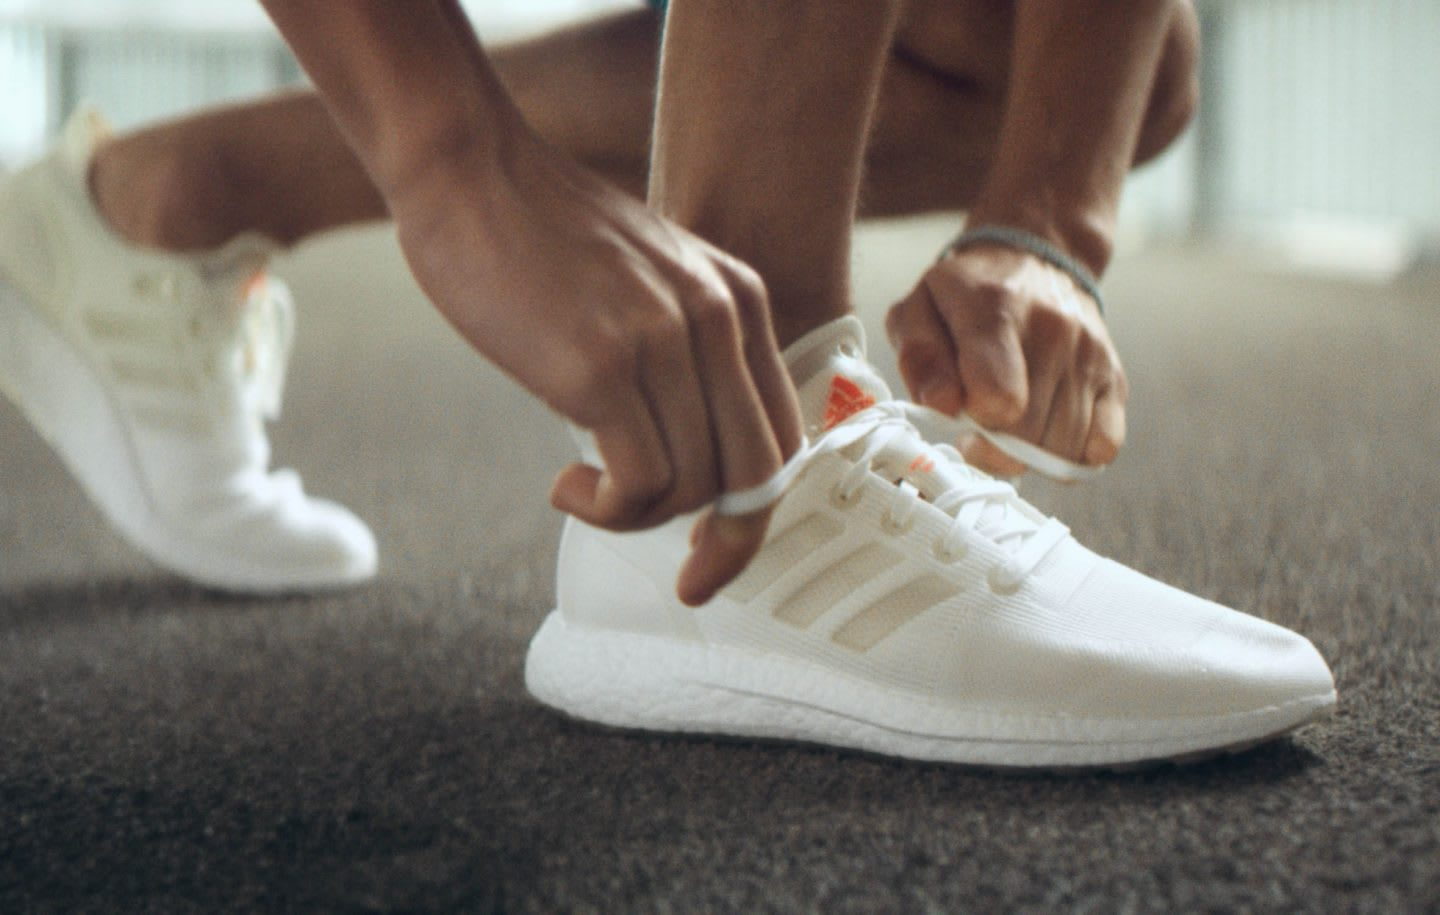 Person tying shoe laces on white sneakers before starting a run, FUTURECRAFT, LOOP, recycle, sustainability, remade